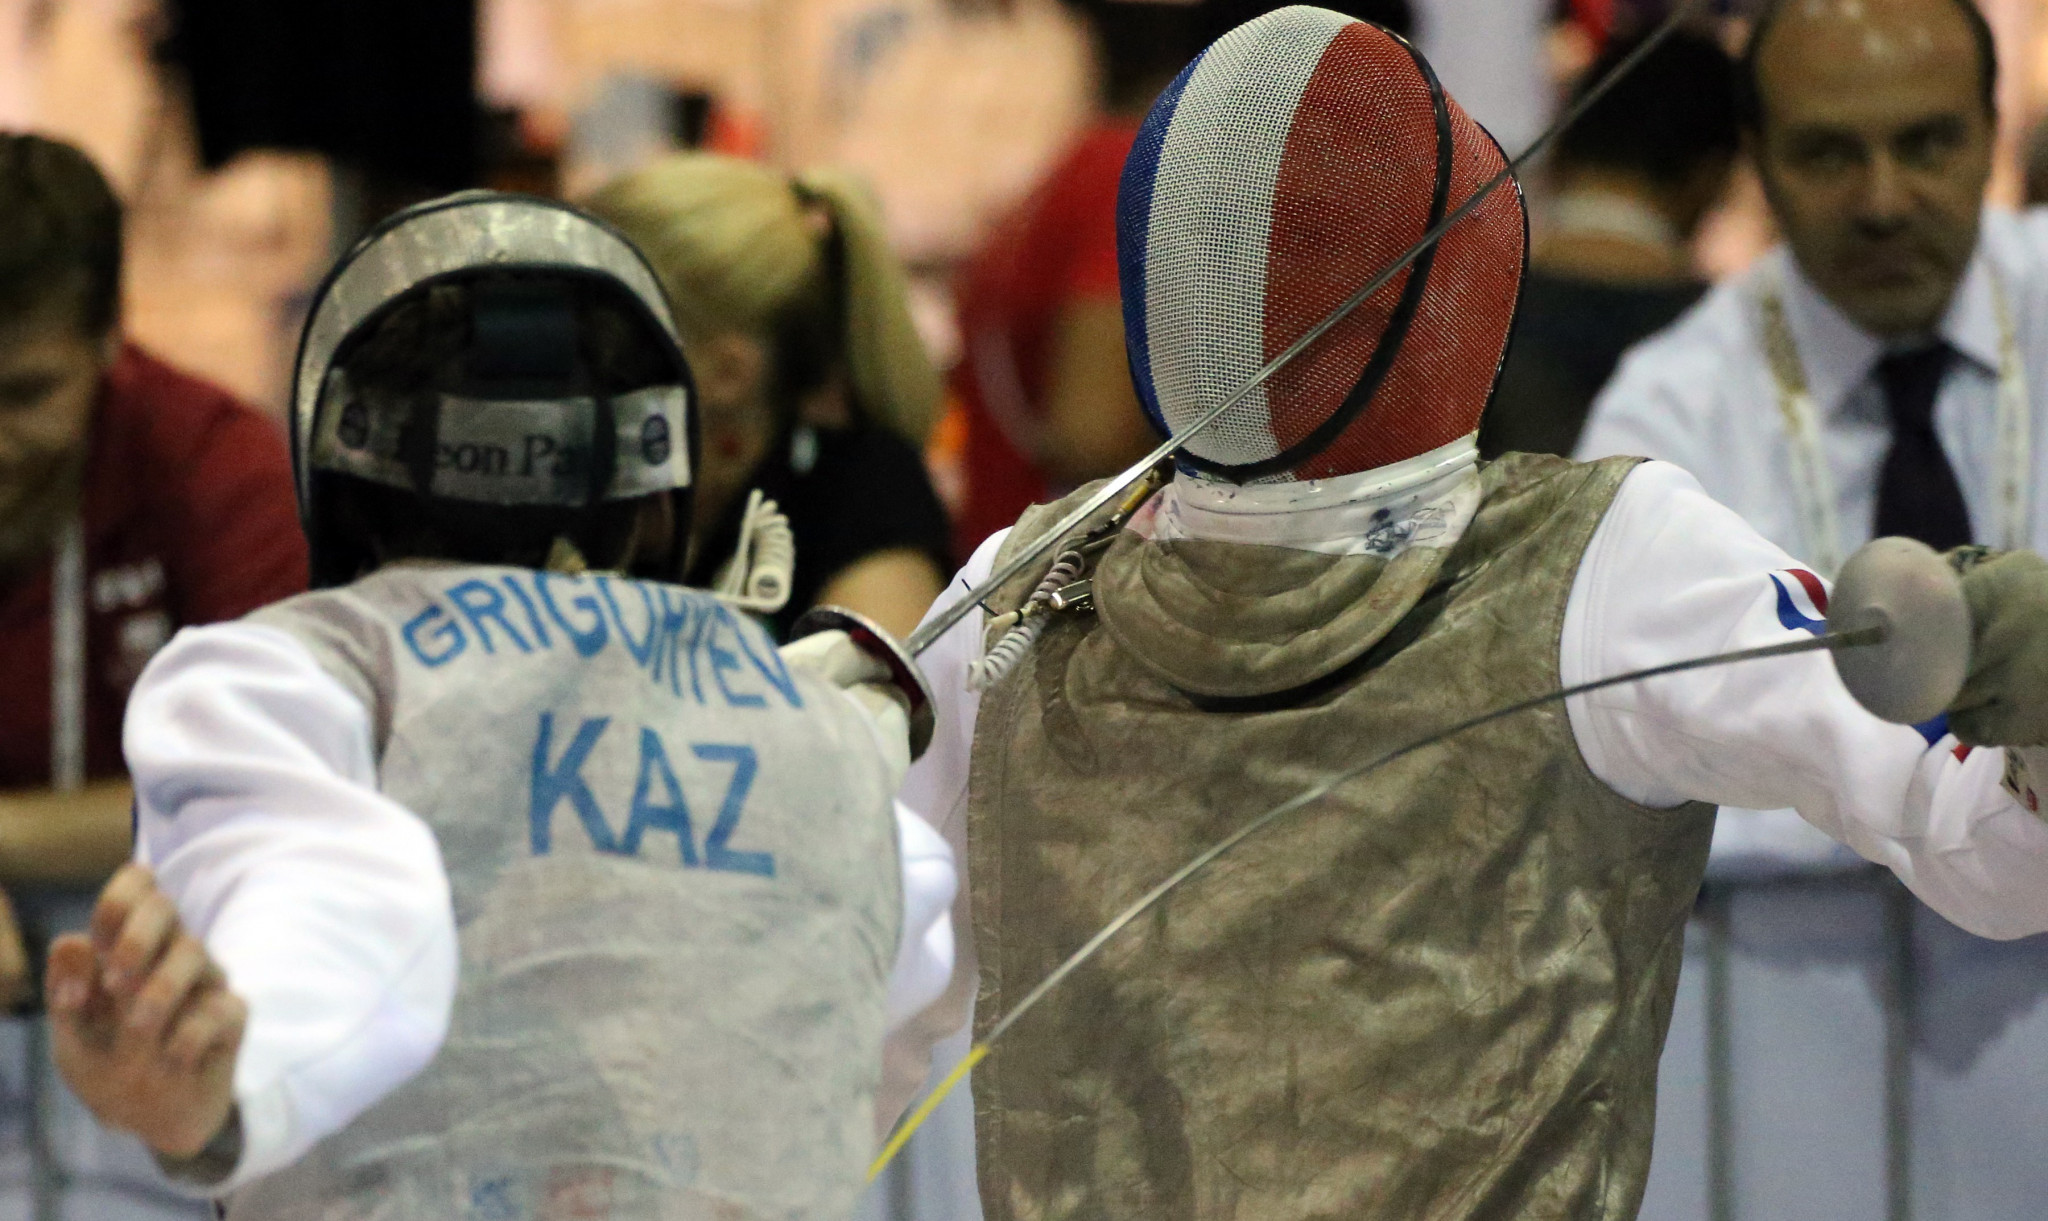 Kazakhstan took silver in the men's team epee, knocking out defending champions south Korea in the semi-finals ©Getty Images